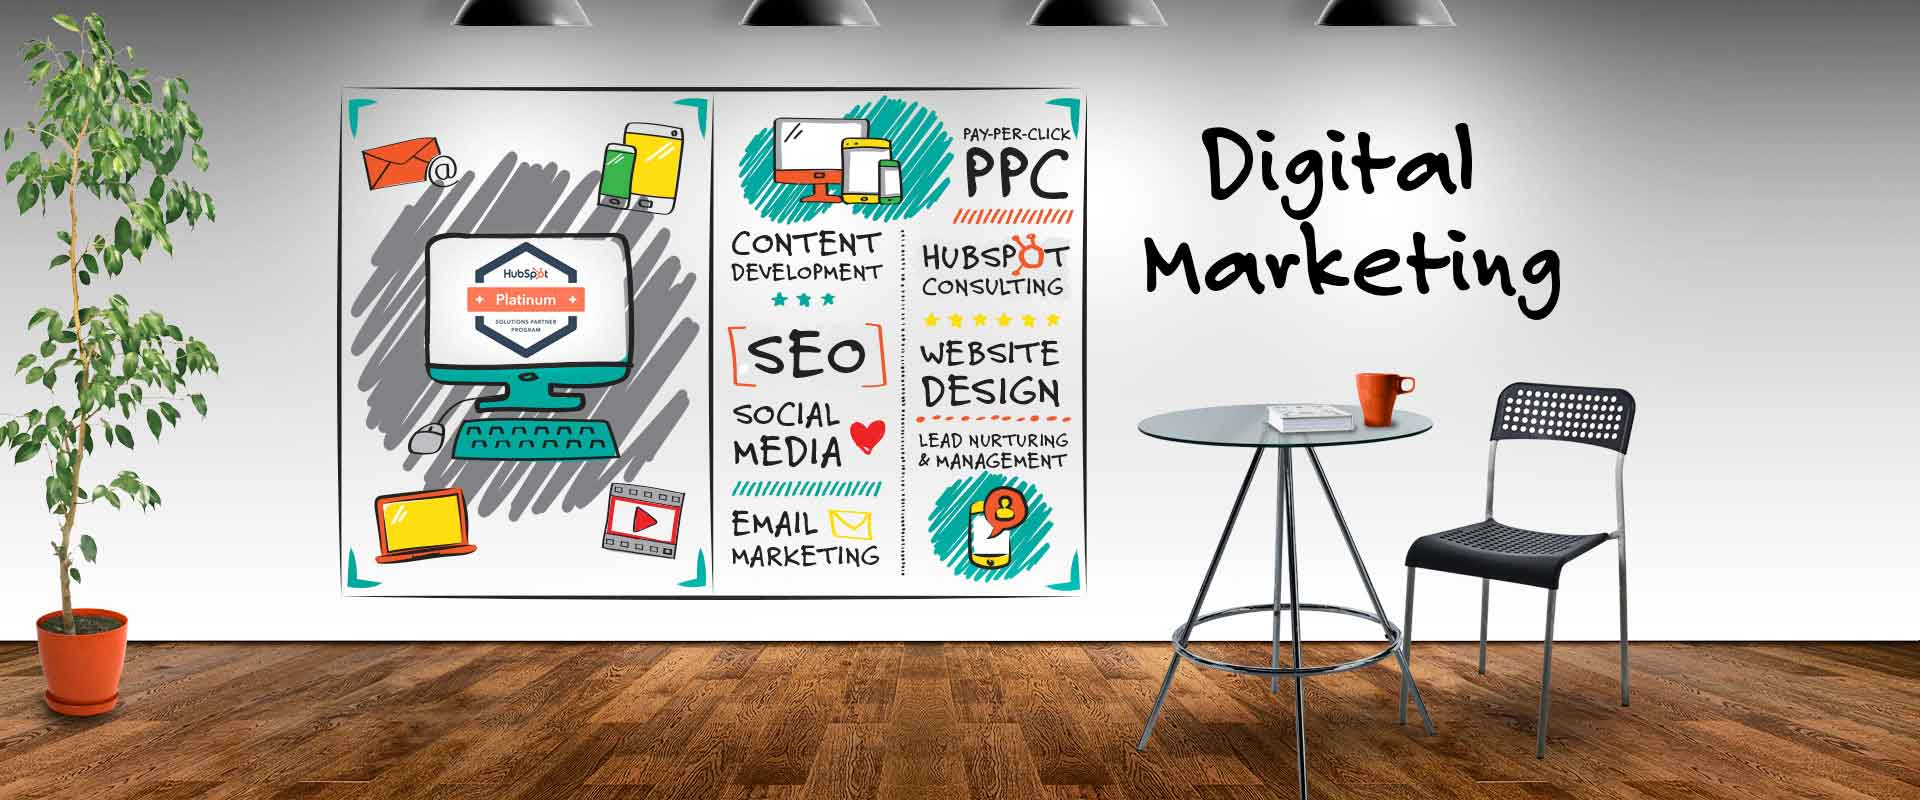 Digital-Marketing-Banner4-1